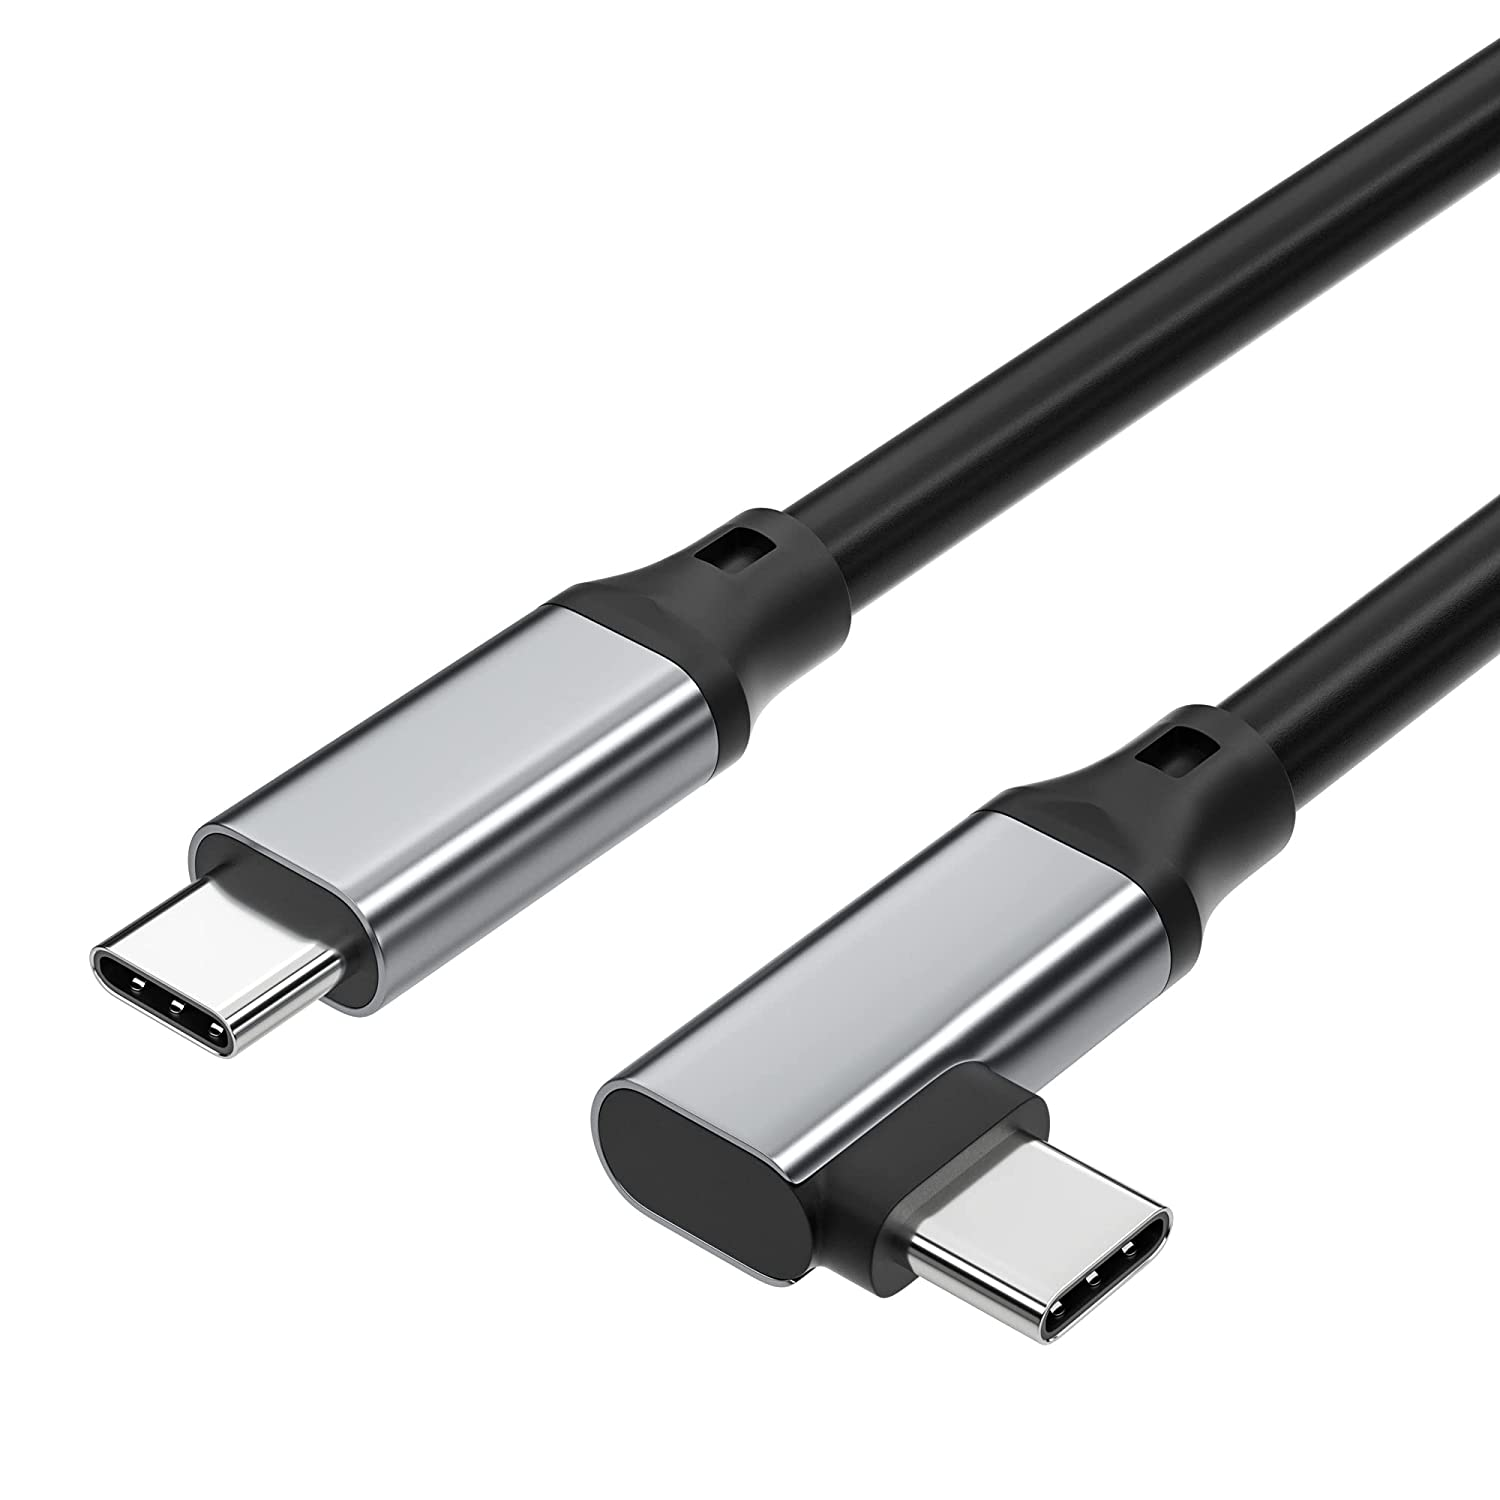 USB C to USB C Cable 3ft 90 Degrees 3.1 Gen 2, iChanko USB C 10Gbps 4K Video Output Monitor Cable, 100W PD Fast Charging Compatible with Thunderbolt 3, Oculus Quest, MacBook Pro, S20 (Grey, 3ft)